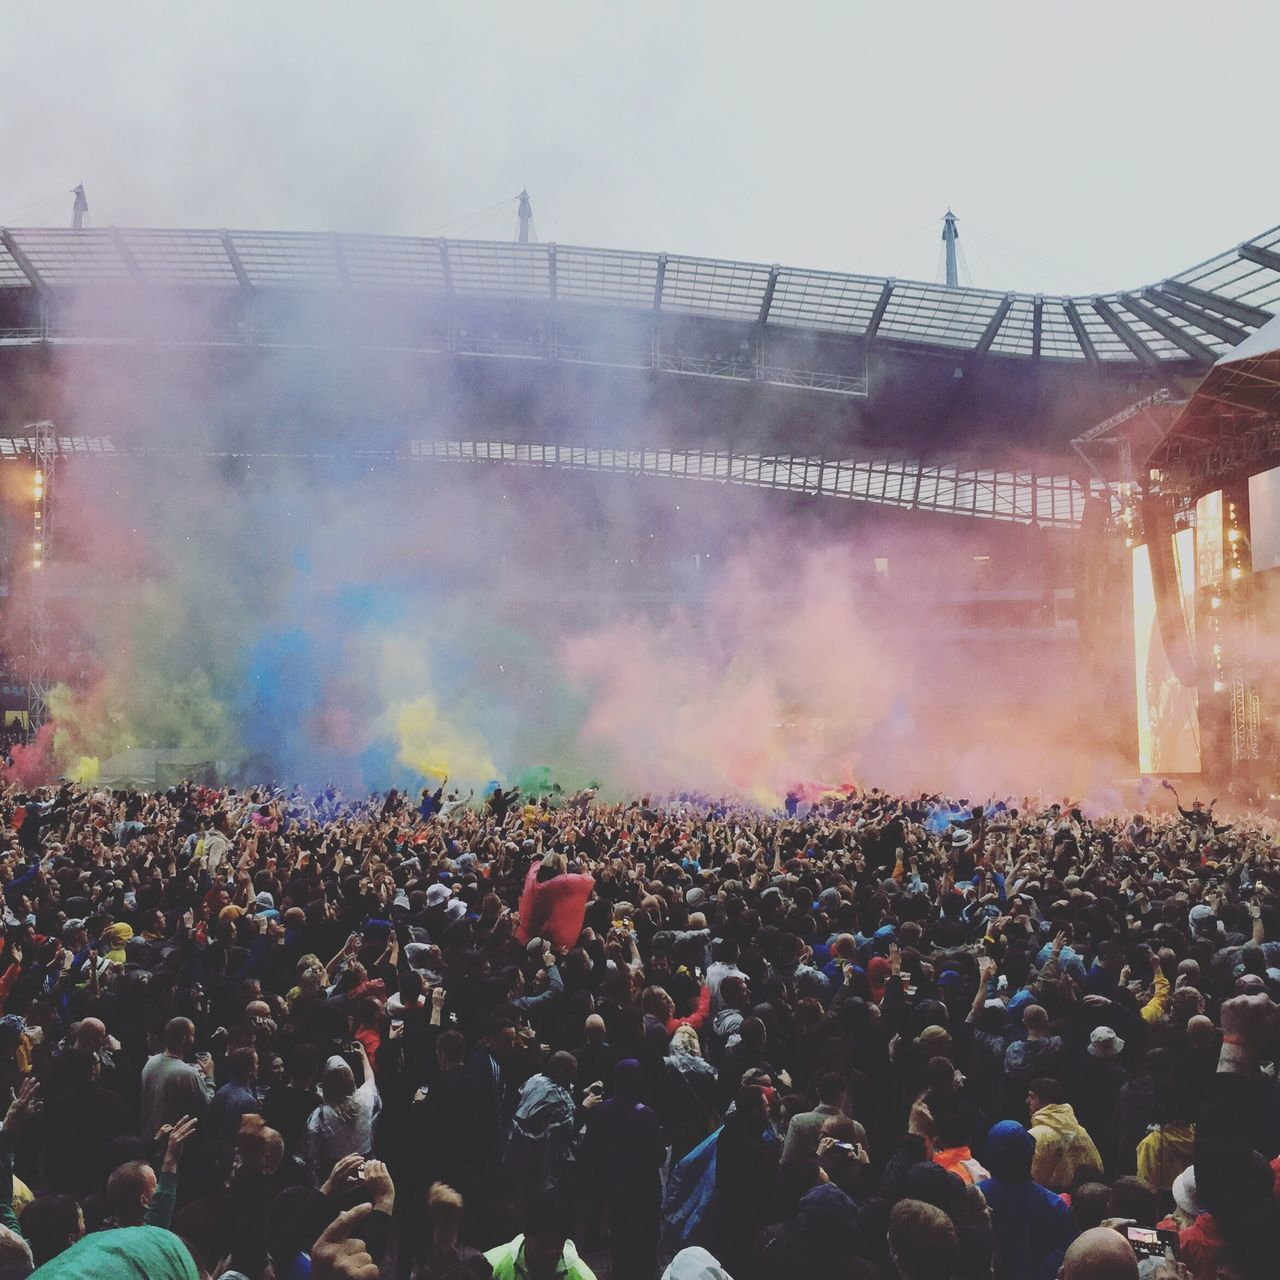 Stoneroses Music Colors Colorful Celebration Crowd Multi Colored Event Outdoors Day People Stadium Concert Manchester Etihad Pyrotechnics